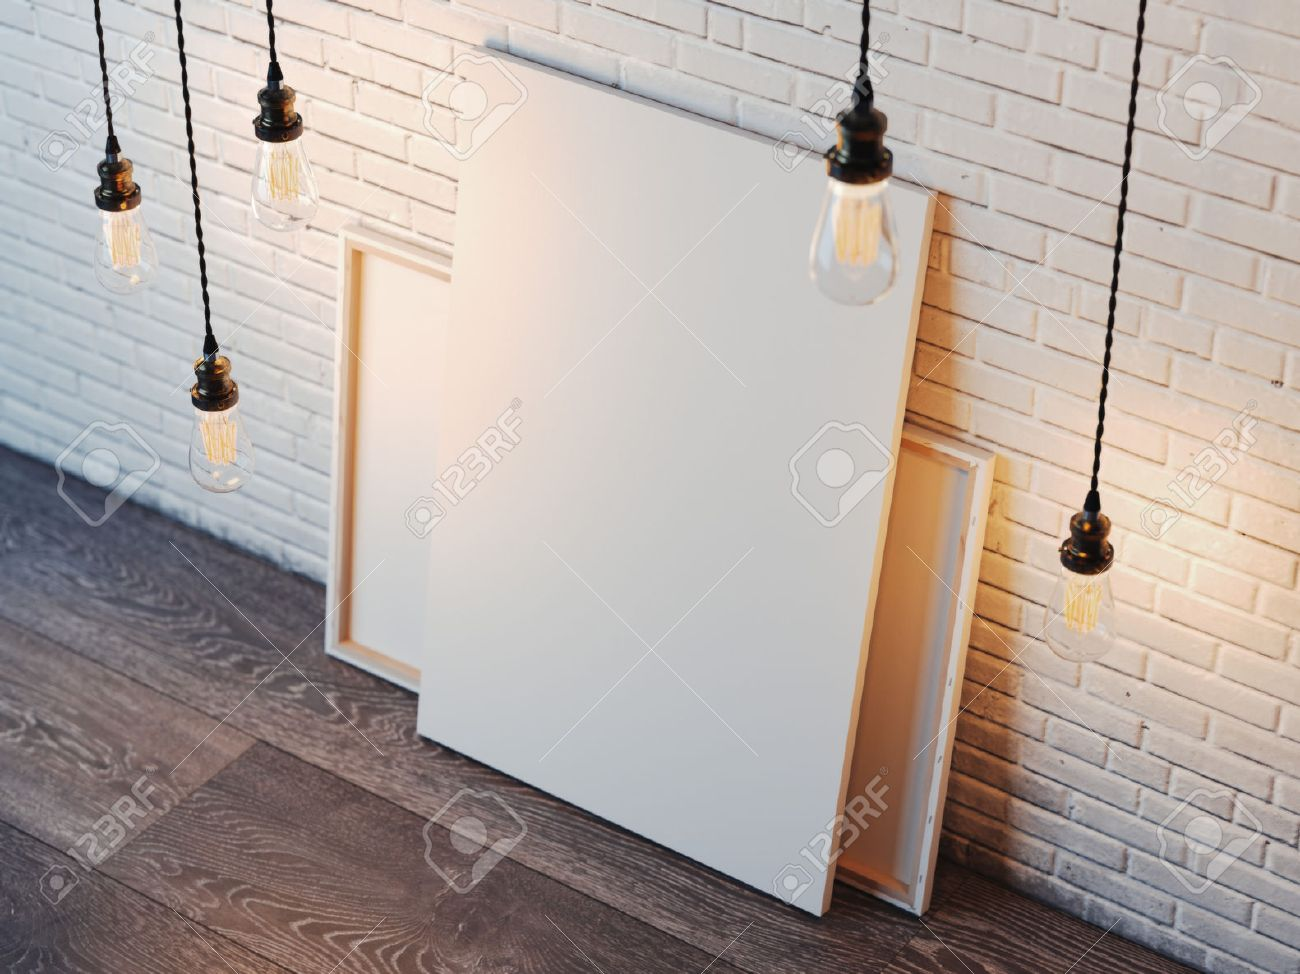 Blank white canvas with glowing bulbs in the modern loft interior with brick wall. 3d rendering - 65666374